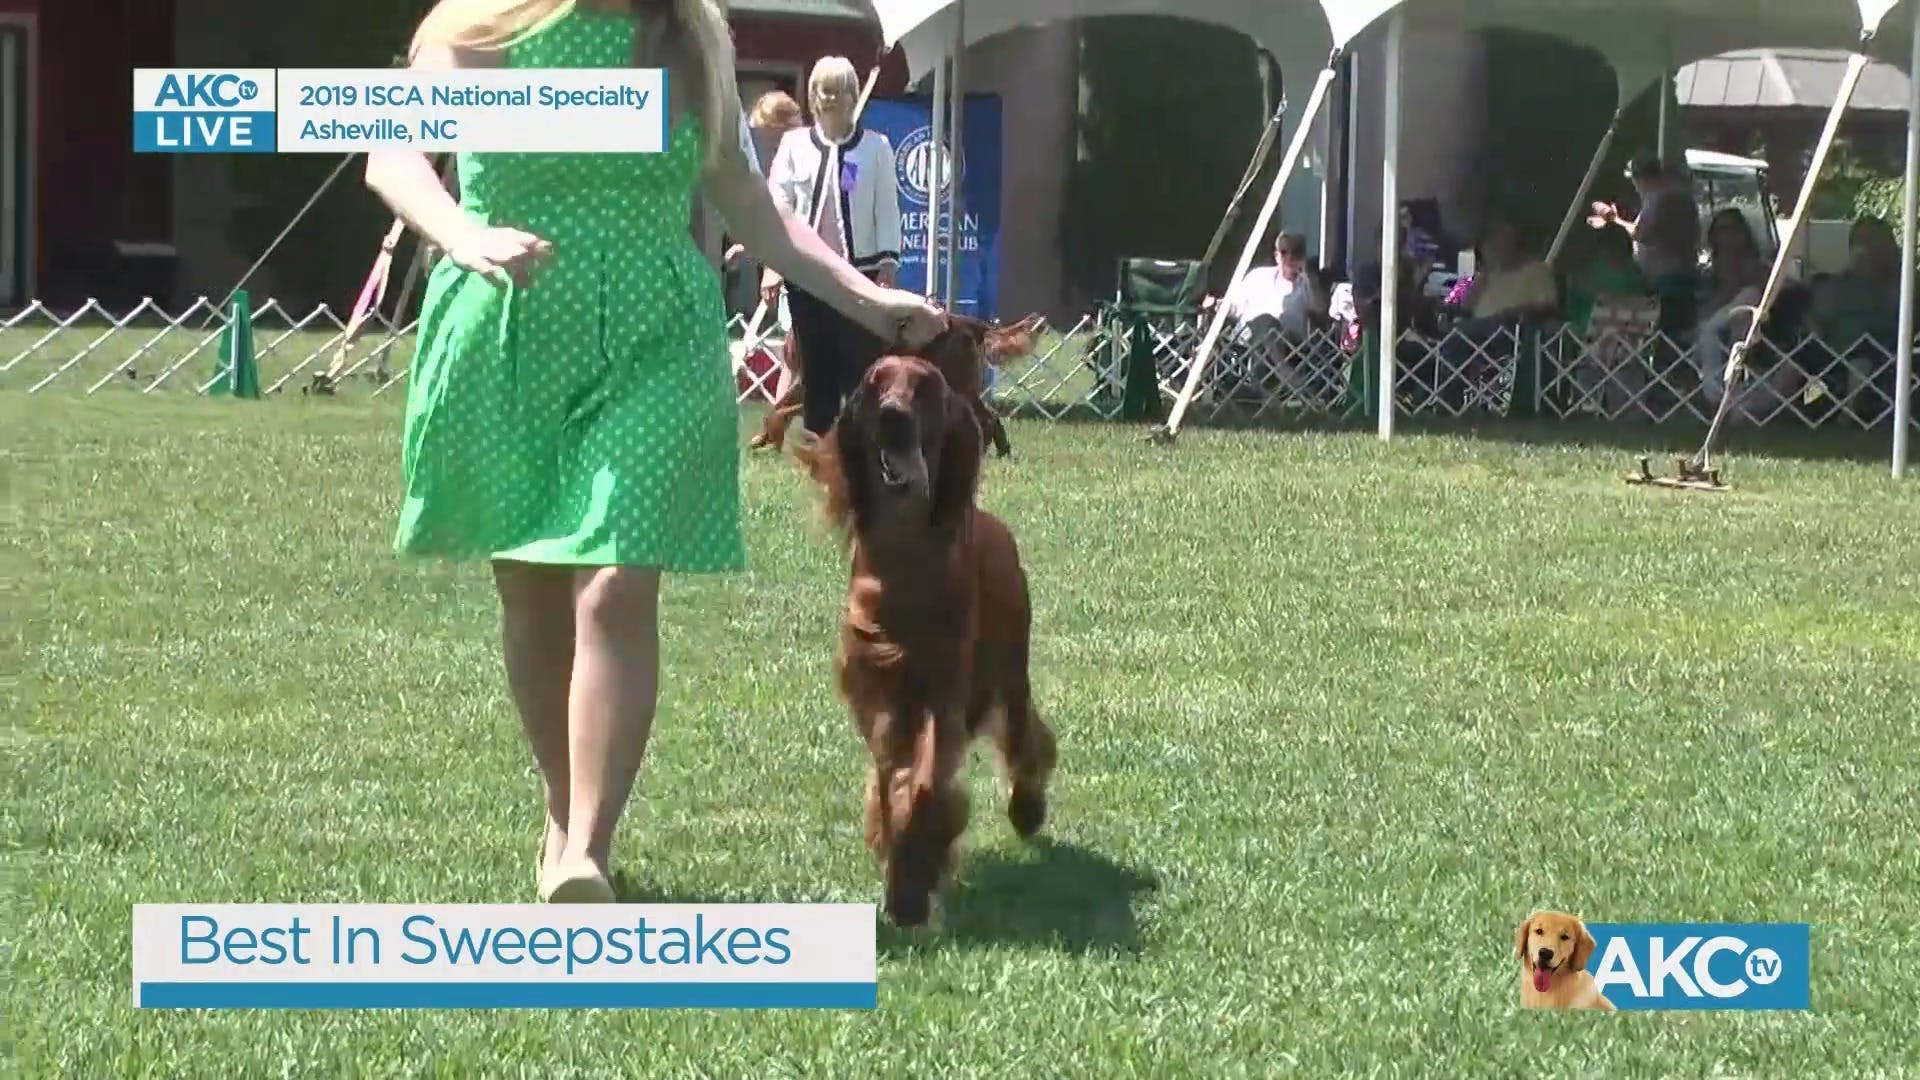 AKC TV : Best in Sweepstakes